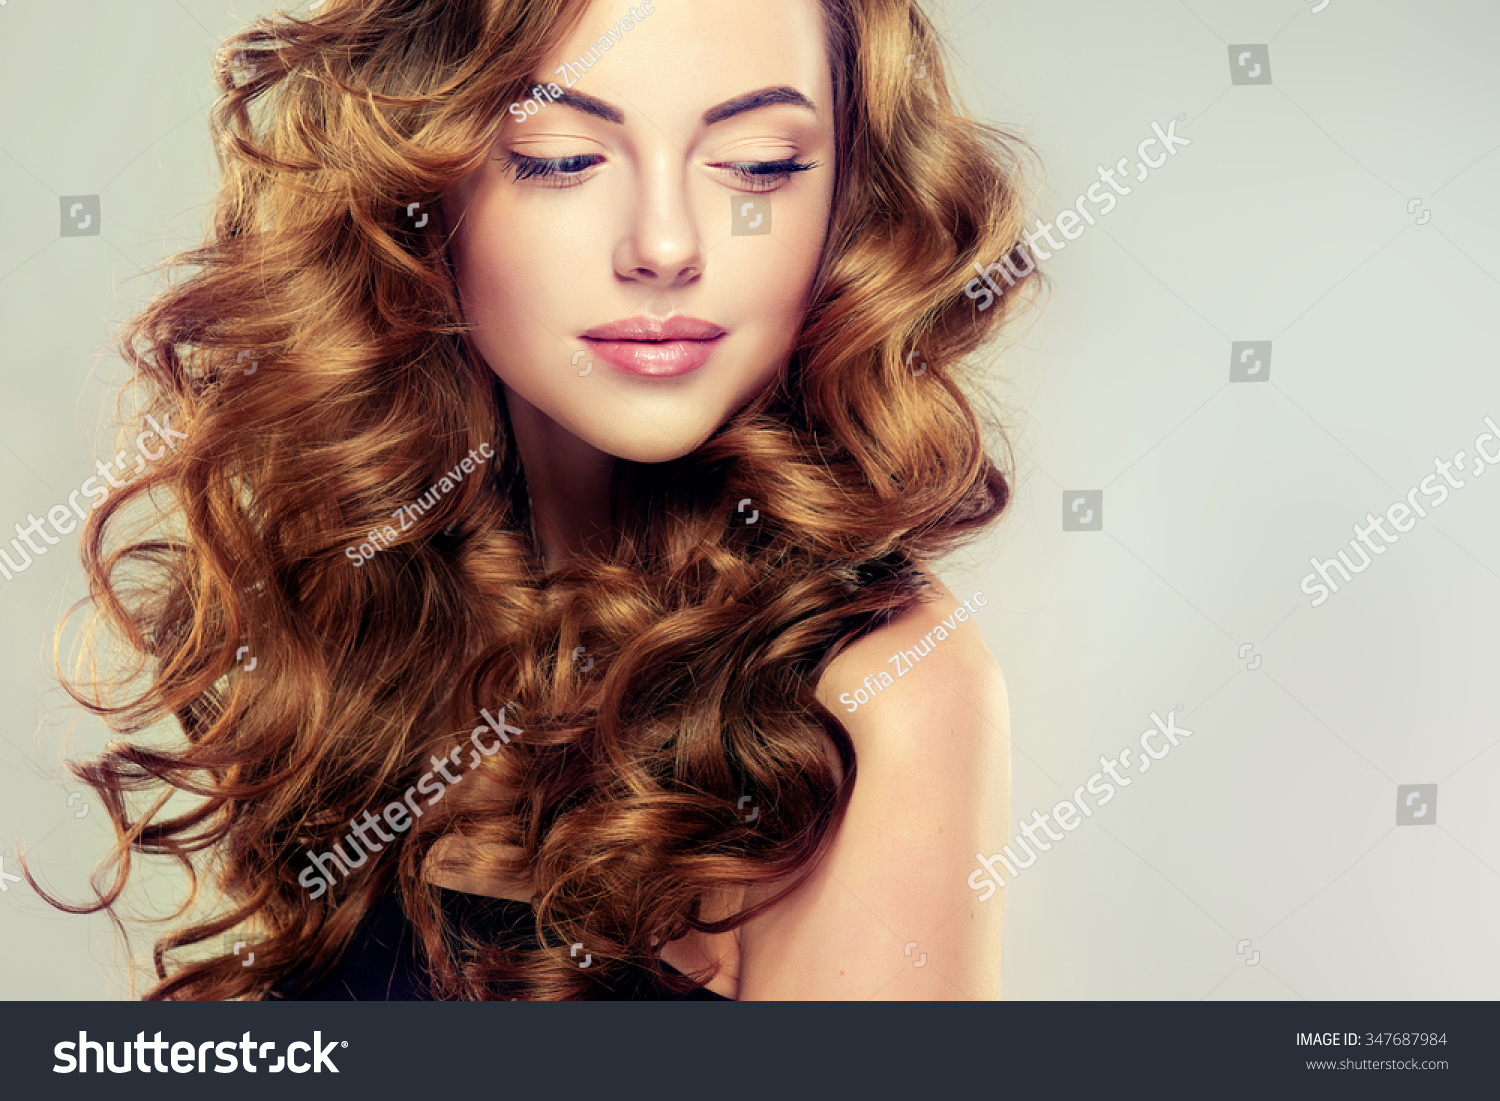 Astounding Beautiful Girl With Long Wavy Hair Brunette With Curly Hairstyle Hairstyle Inspiration Daily Dogsangcom